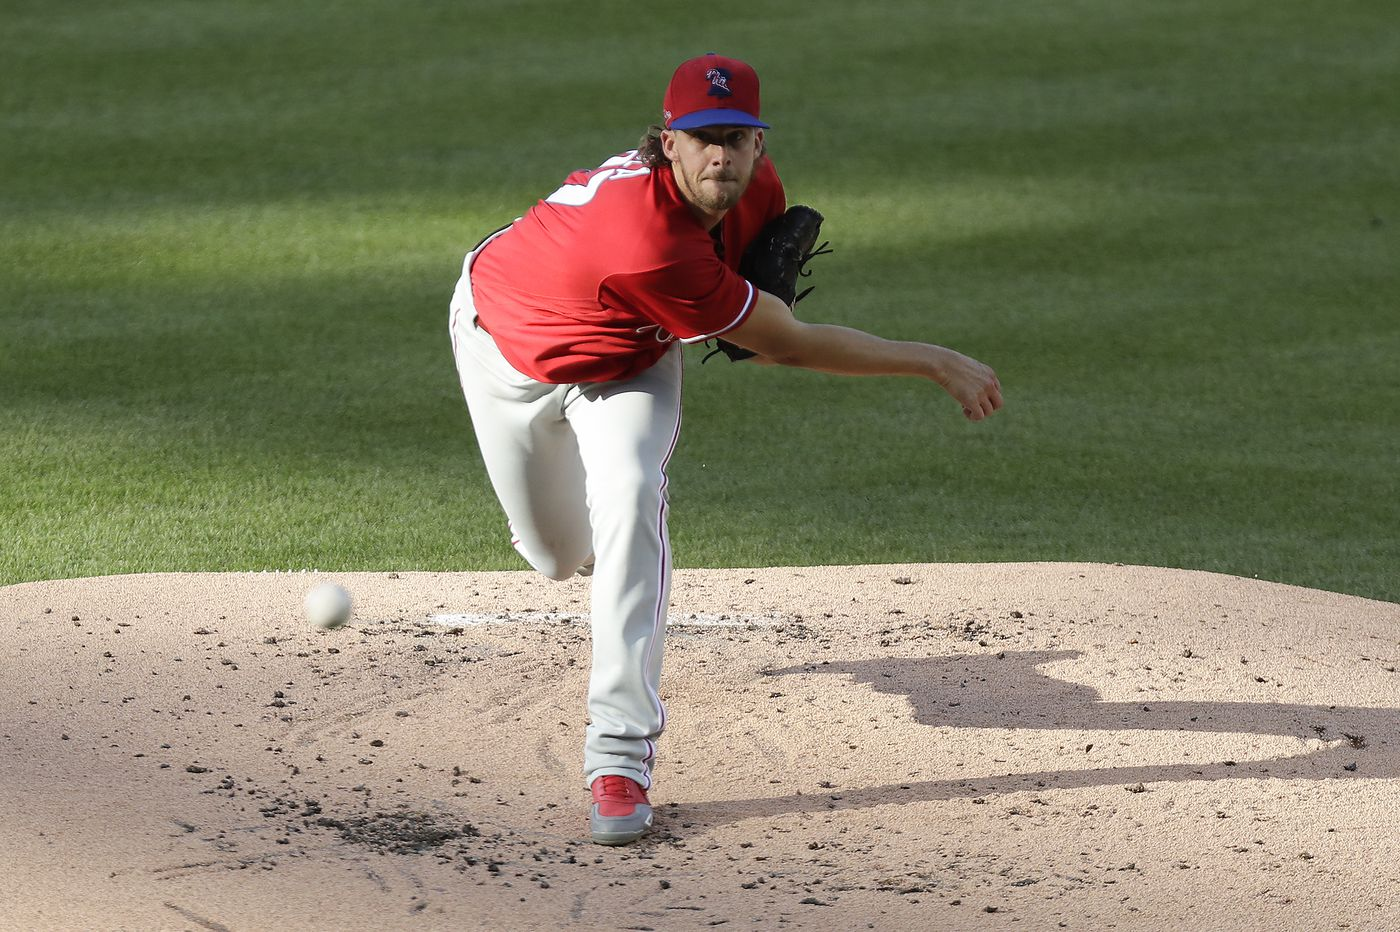 Phillies' Aaron Nola on track for opening day after exhibition start against Nationals